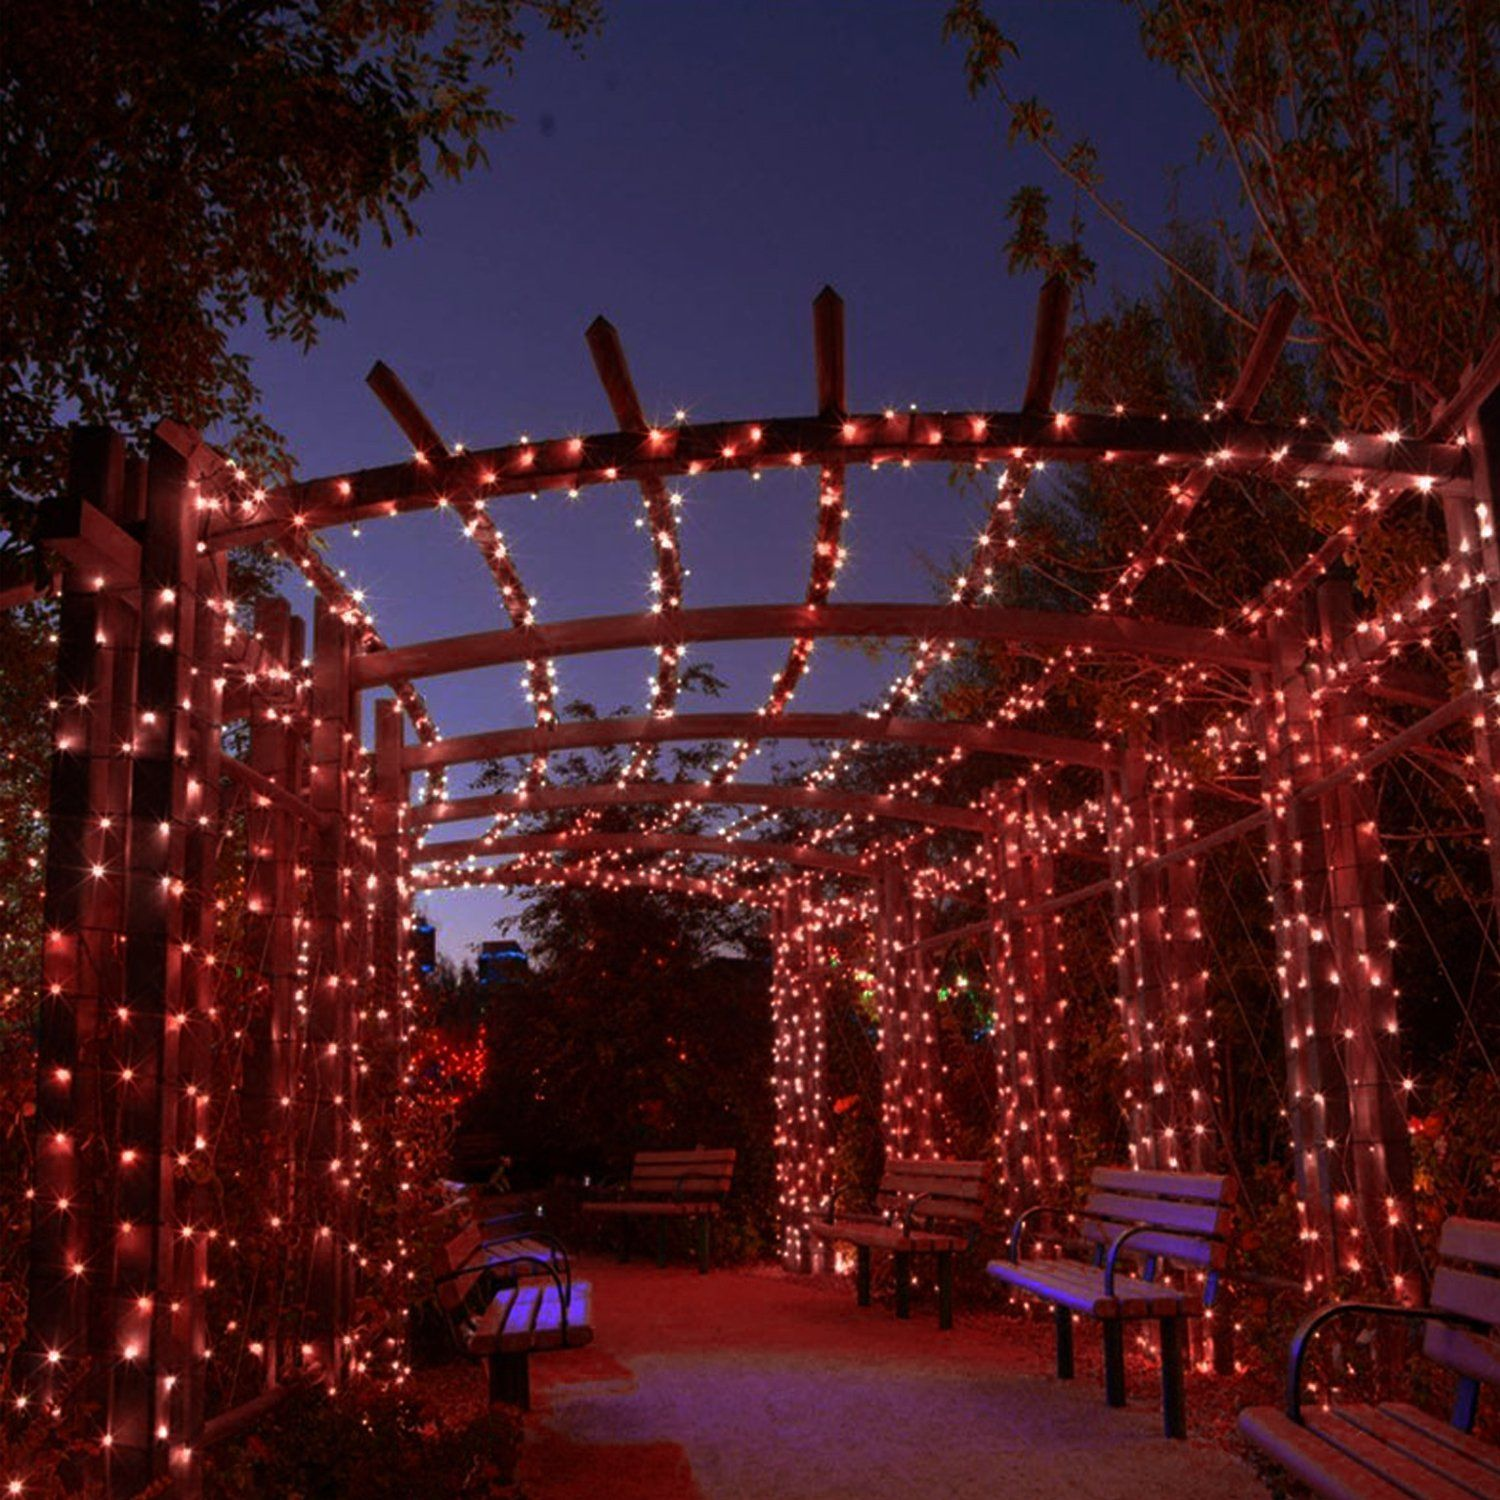 Usa Neon King Christmas Lights Indoor And Outdoor 33ft 120v Ul Certified 100 Led Tree Lights For Lawn Garden Home Lawn And Garden Holiday Red Christmas Lights